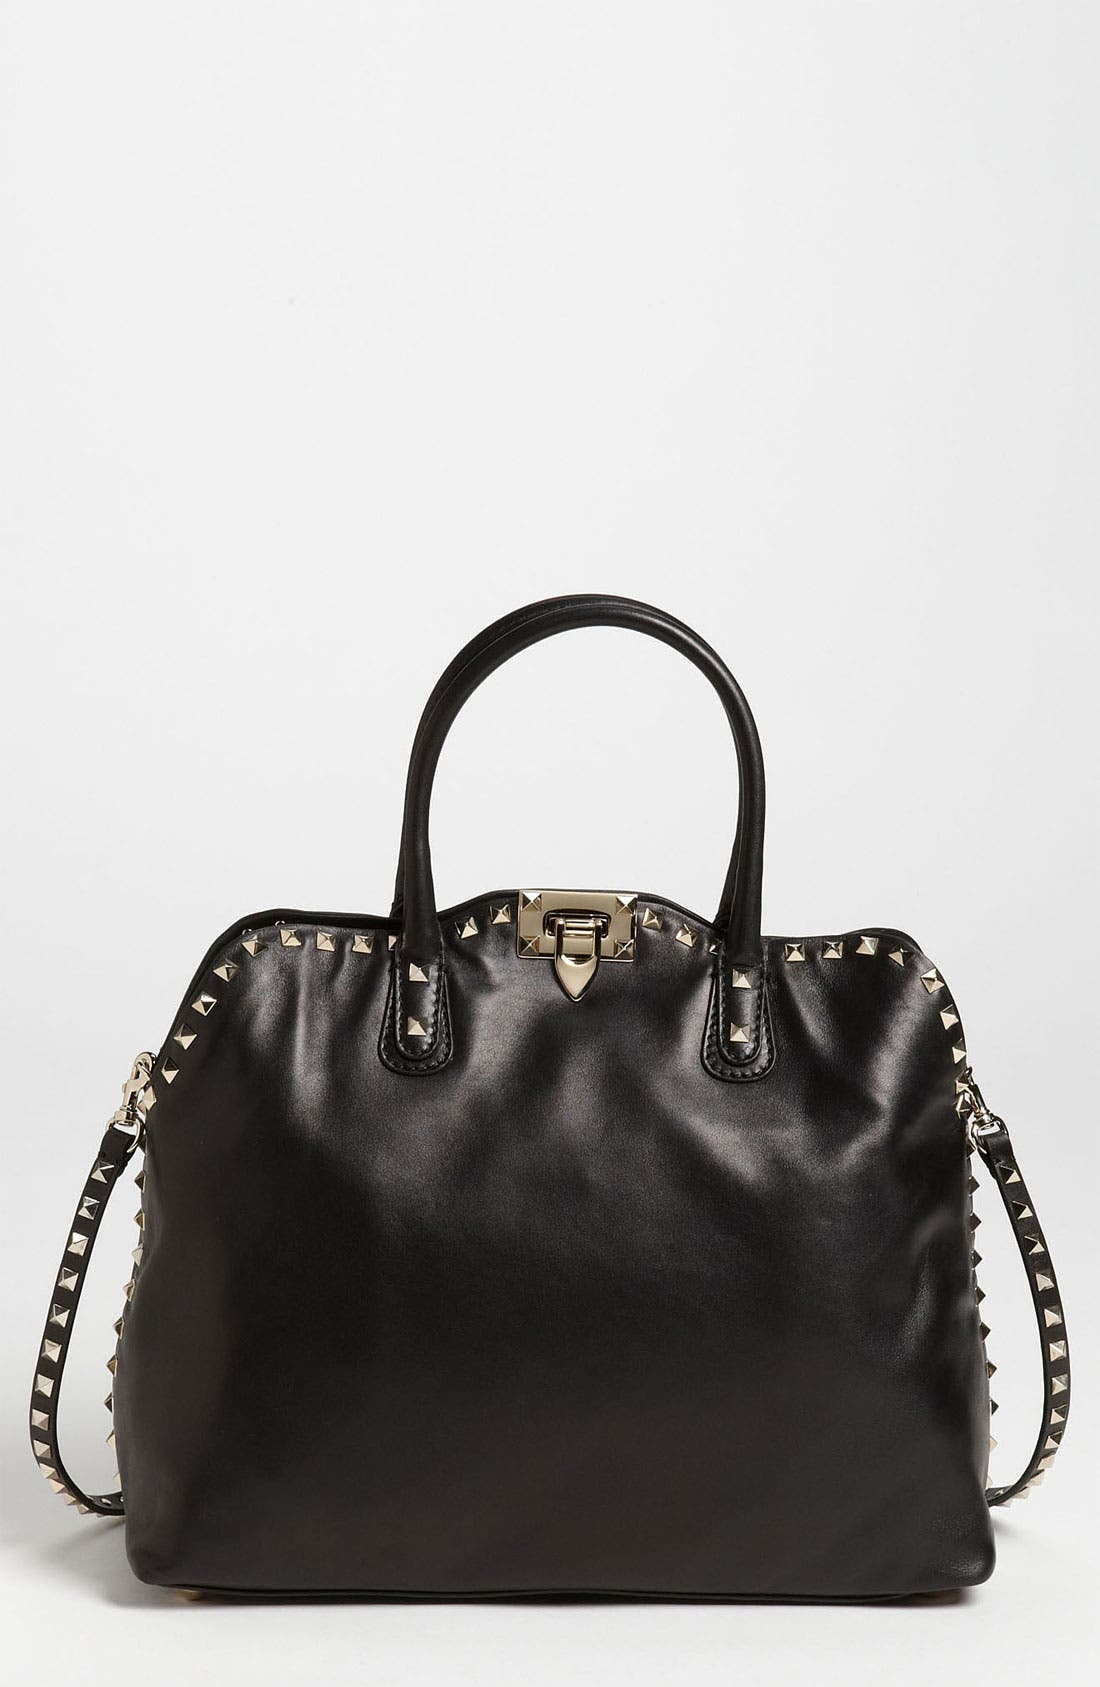 Main Image - Valentino 'Rockstud' Leather Dome Handbag